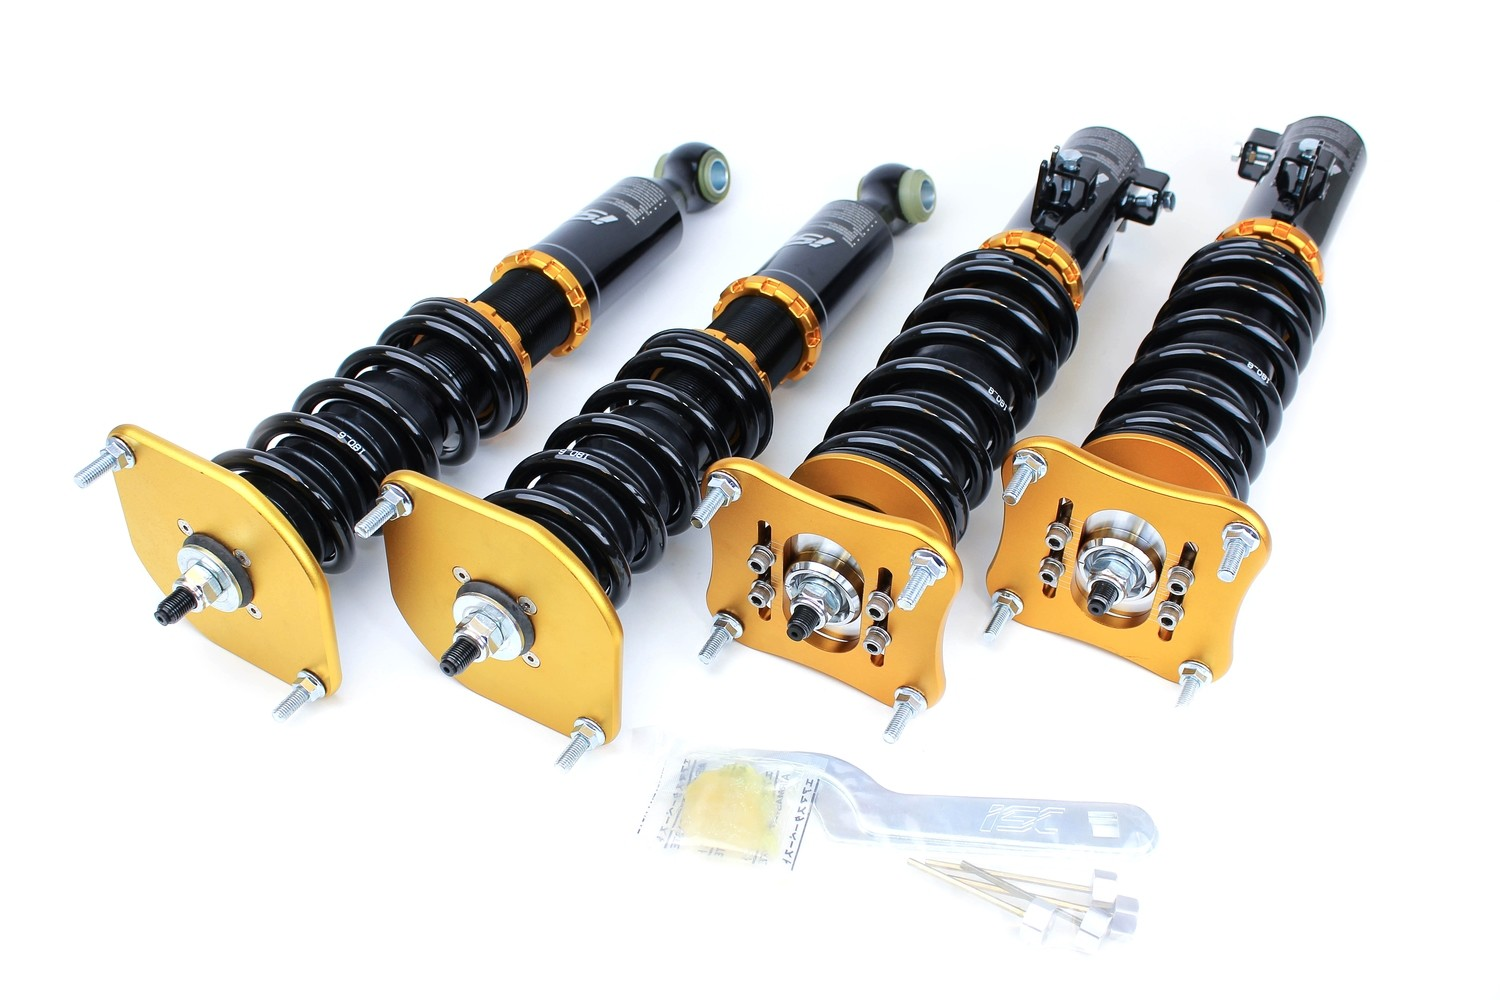 CLEARANCE  Mazda RX7 FC3S Chassis 86-91 ISC N1 Coilover Suspension